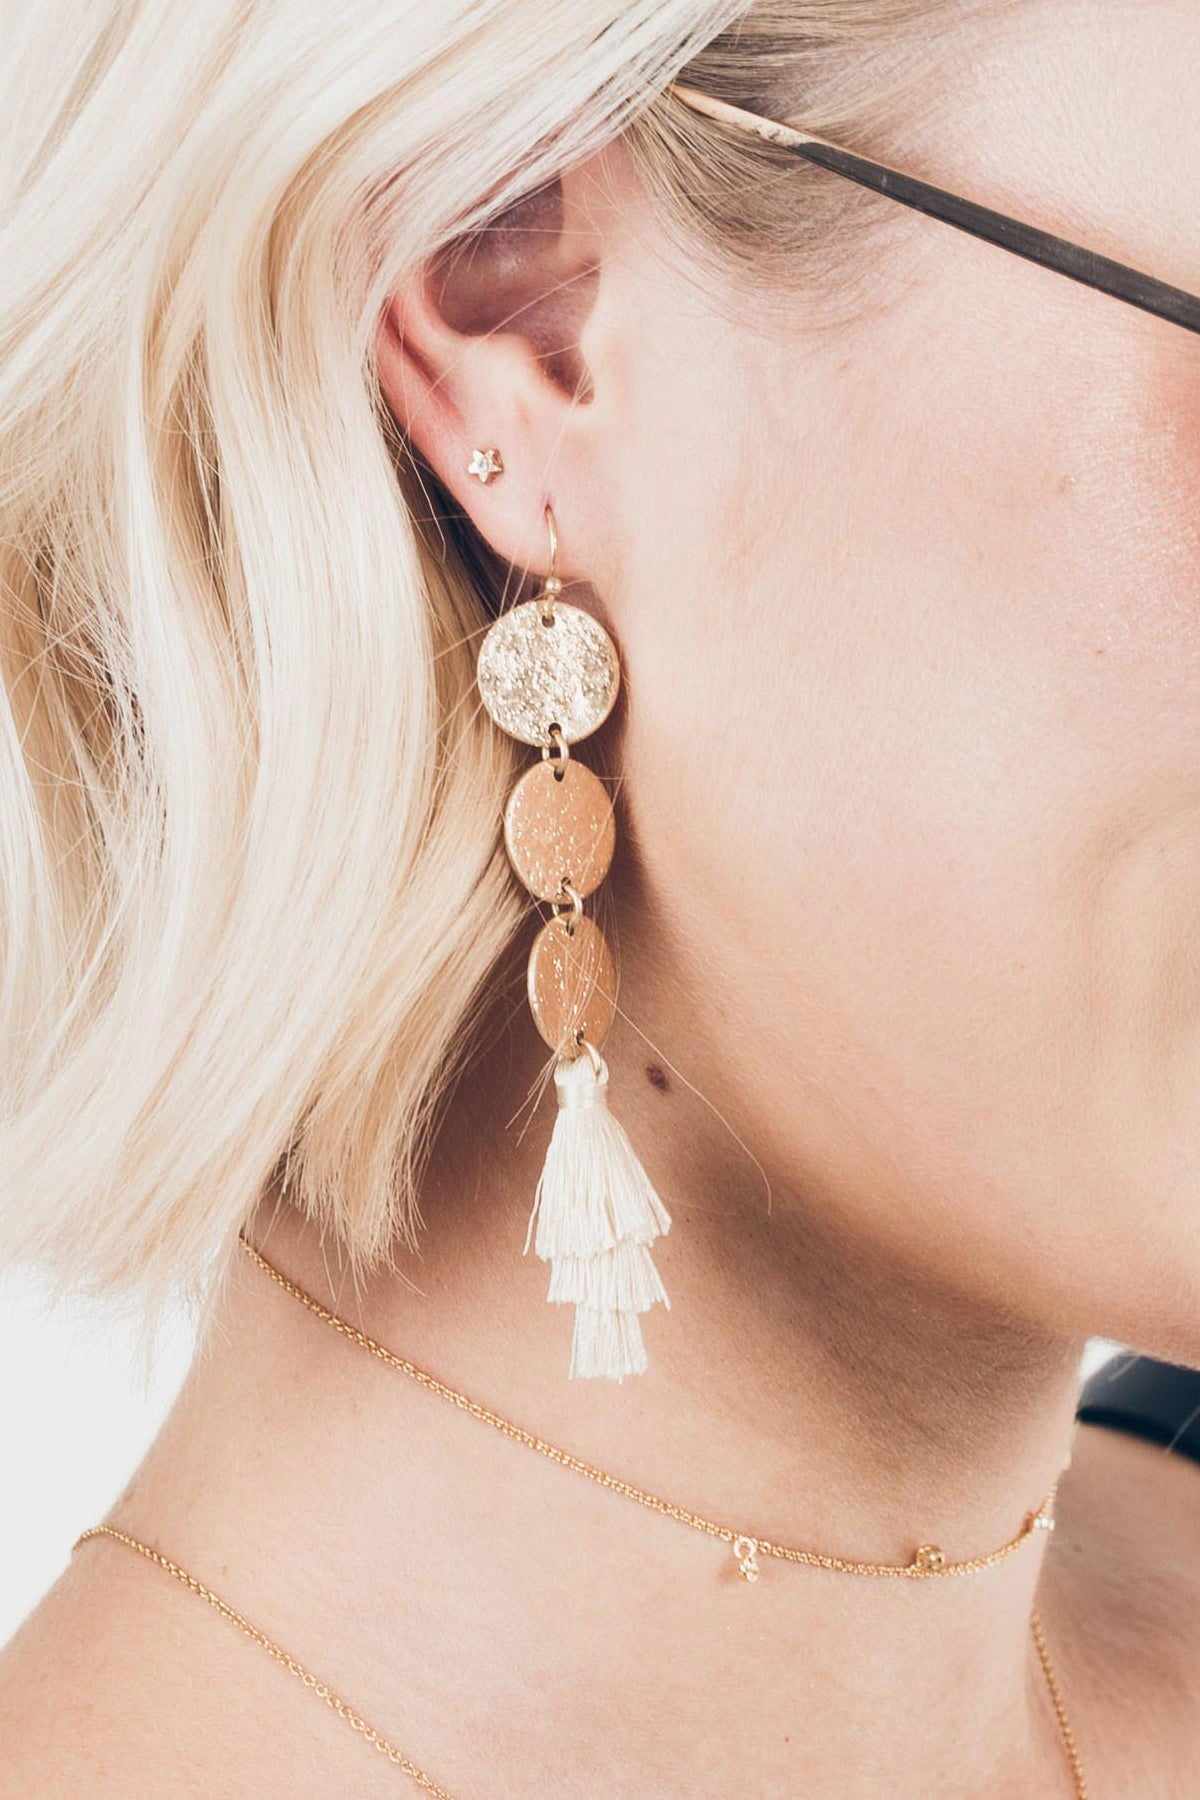 Trifecta Earrings in Ivory